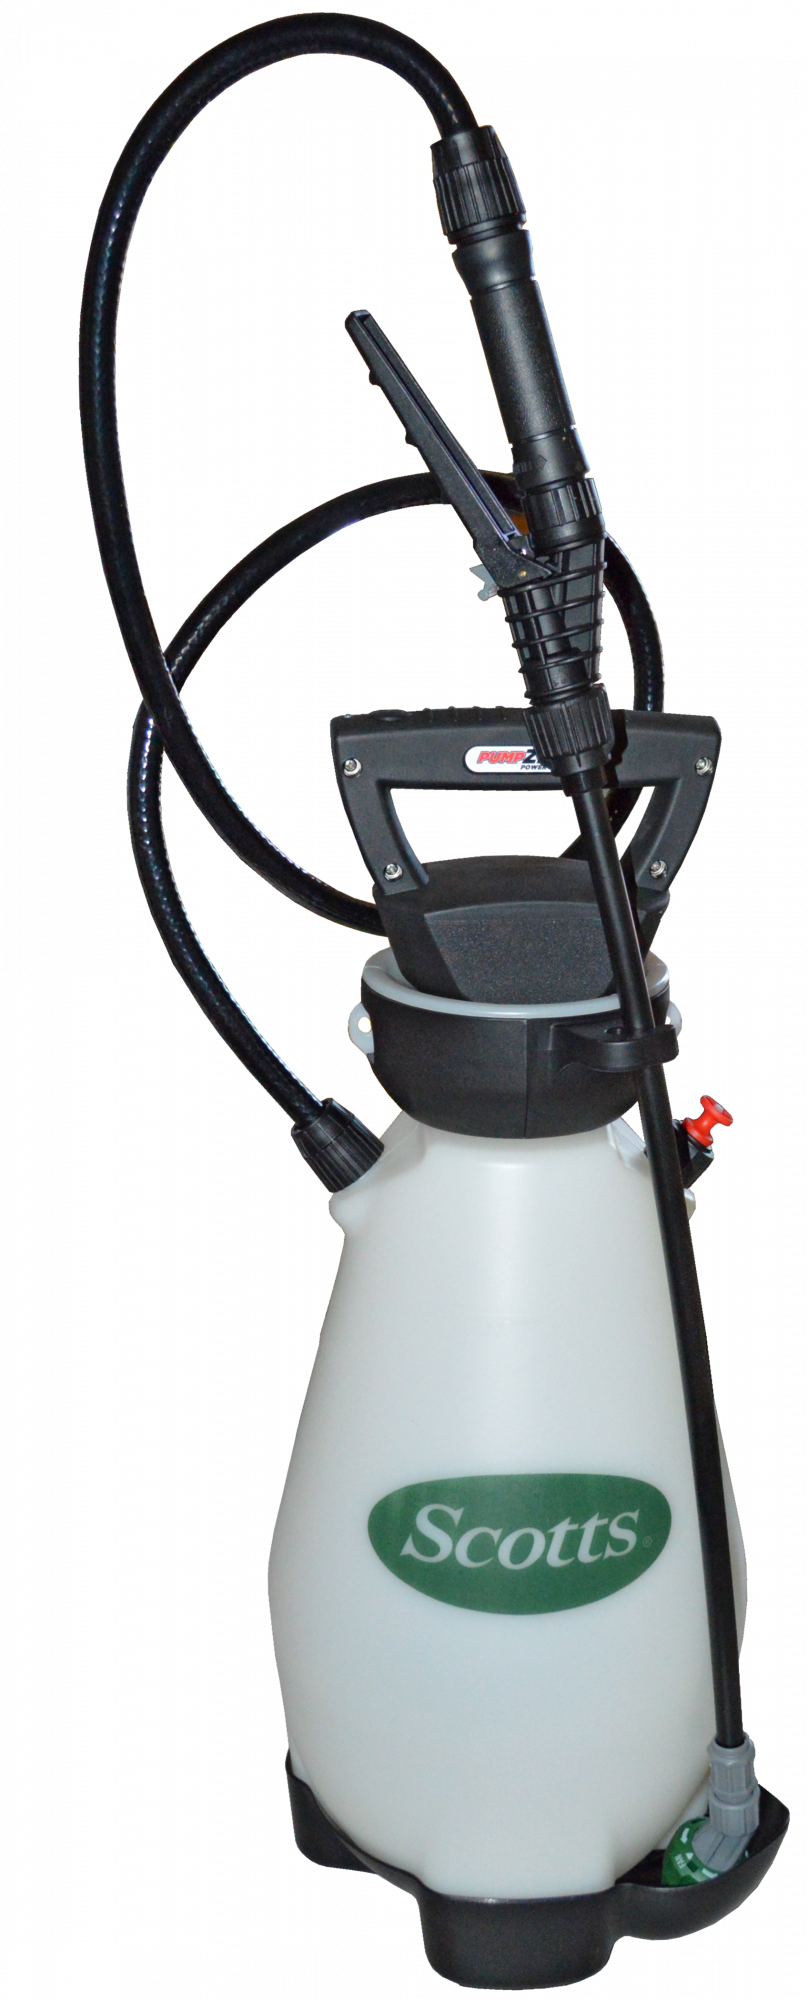 Scotts® Professional, 2 Gal, Lithium-Ion Battery Powered Sprayer, Model 190567